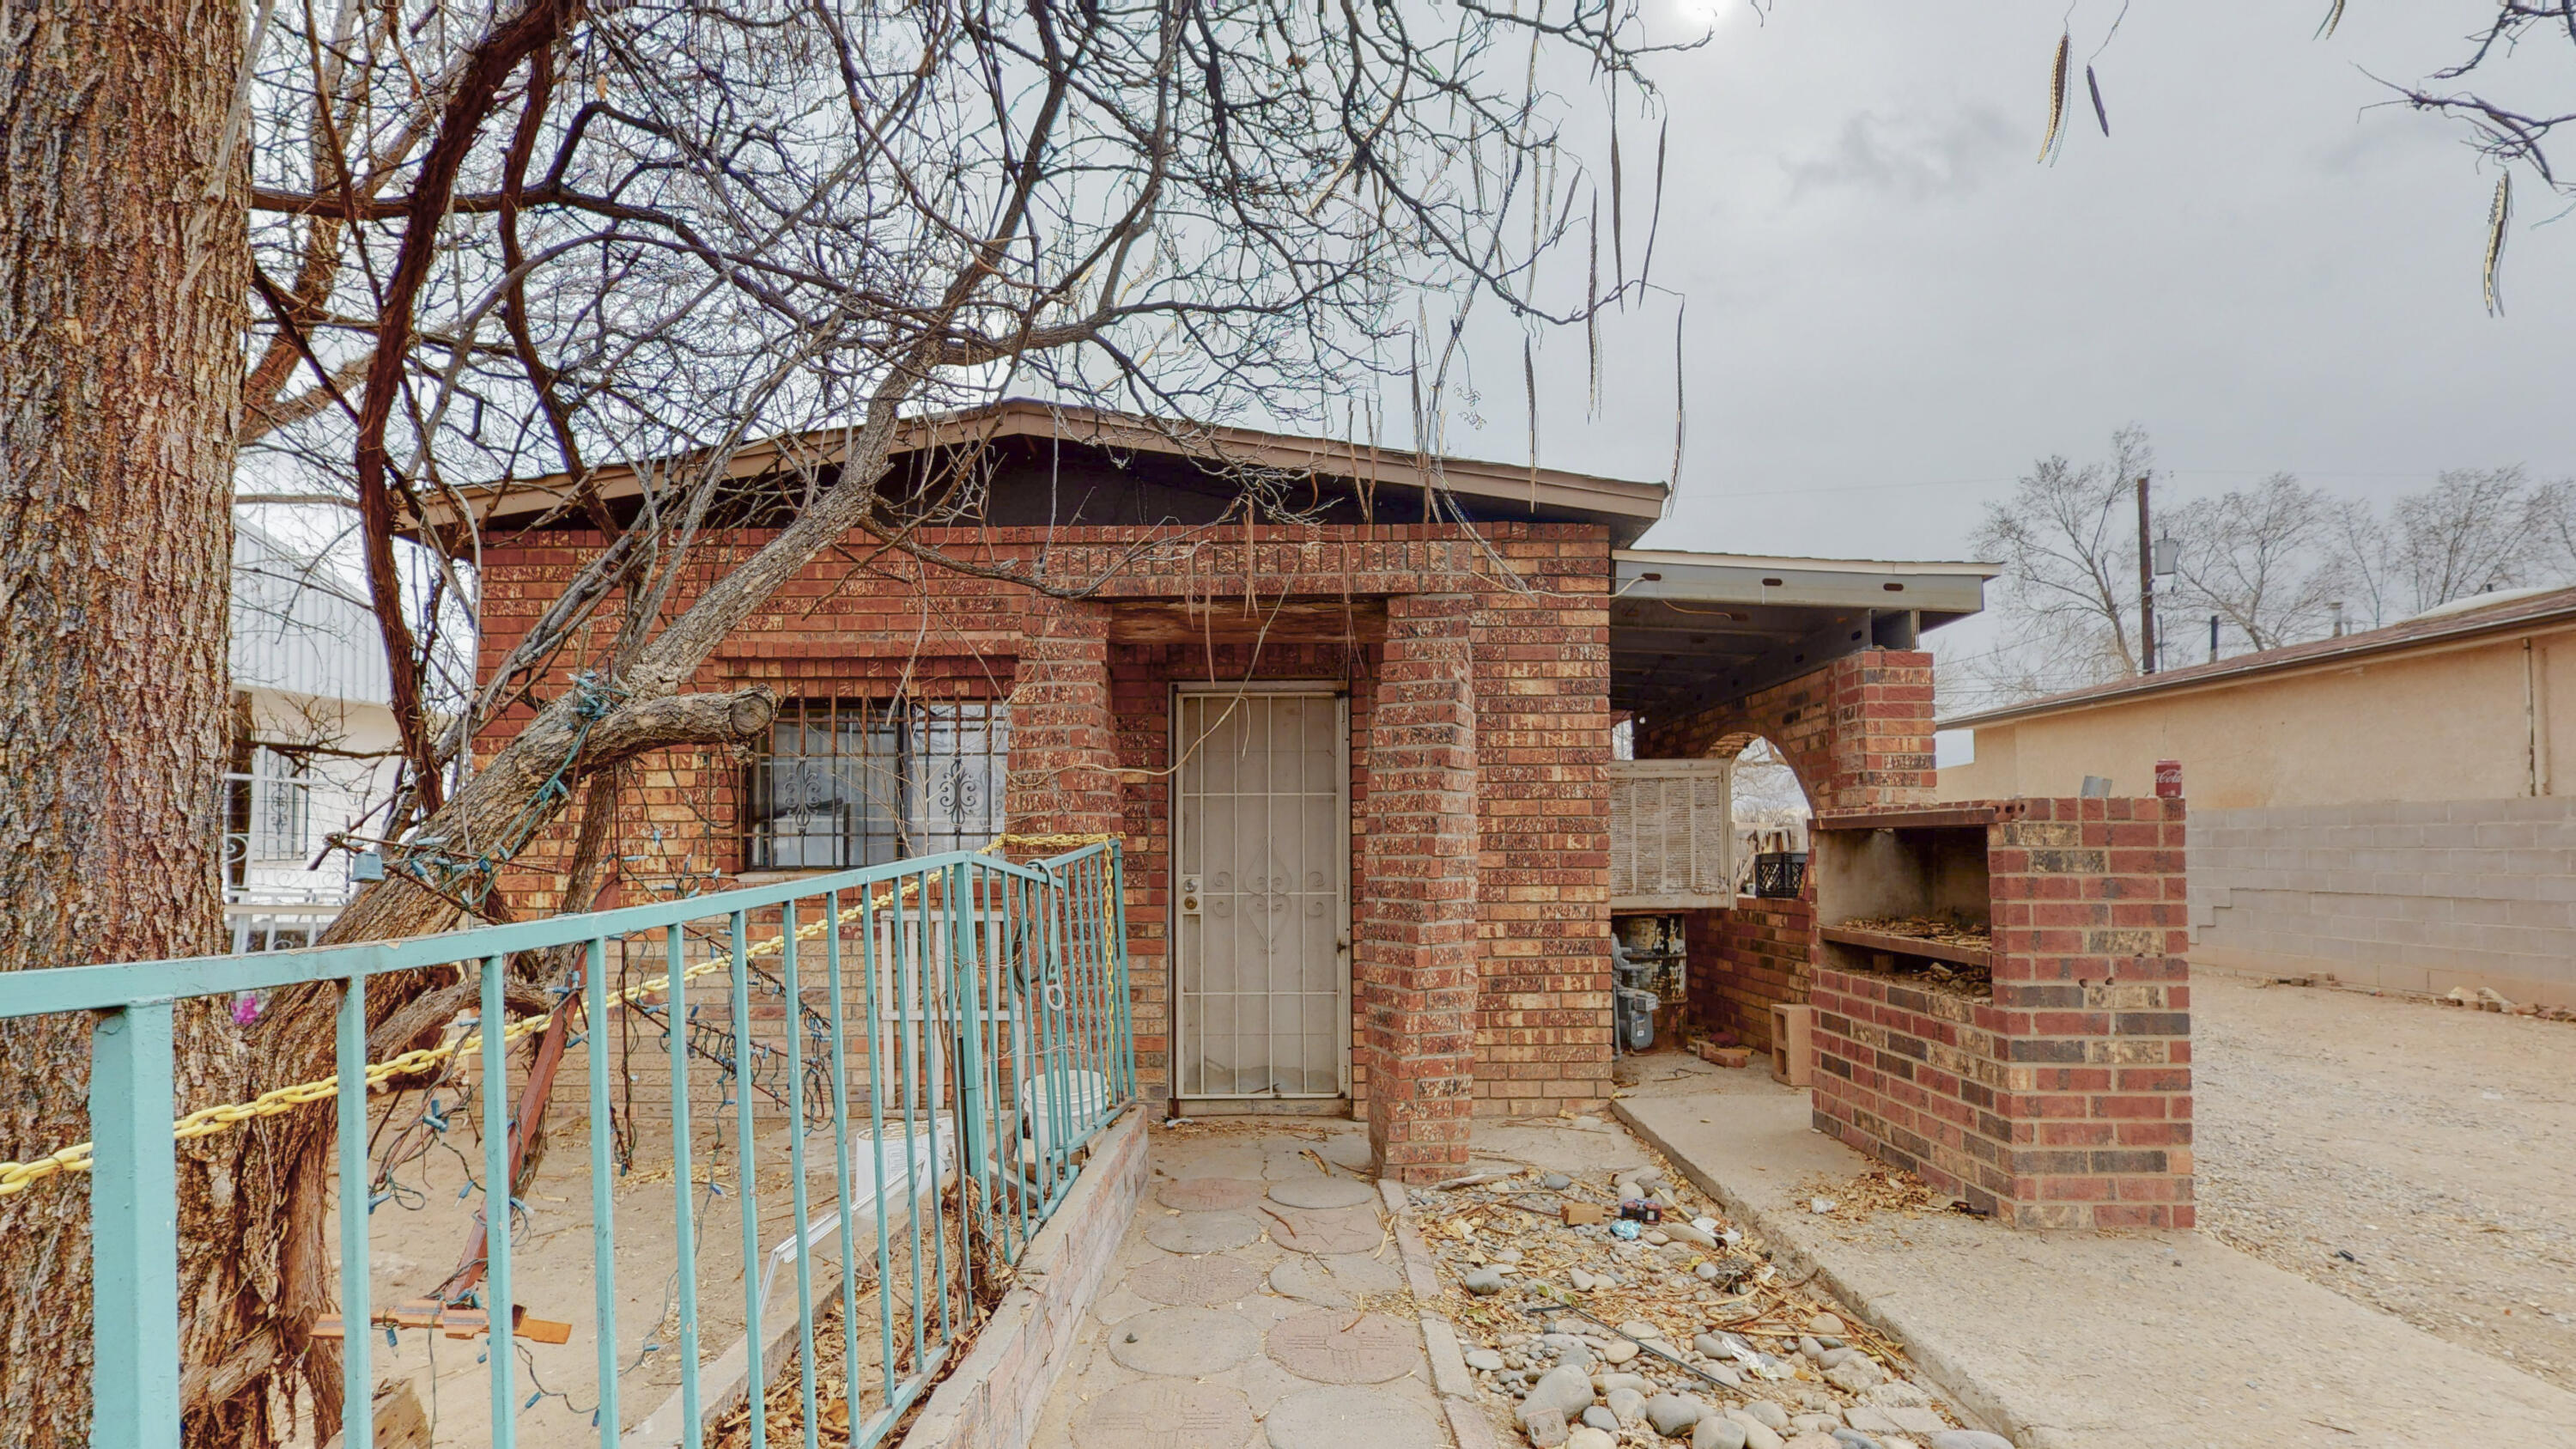 Investors special! Tons of potential! Fully gated property! Sold AS-IS!